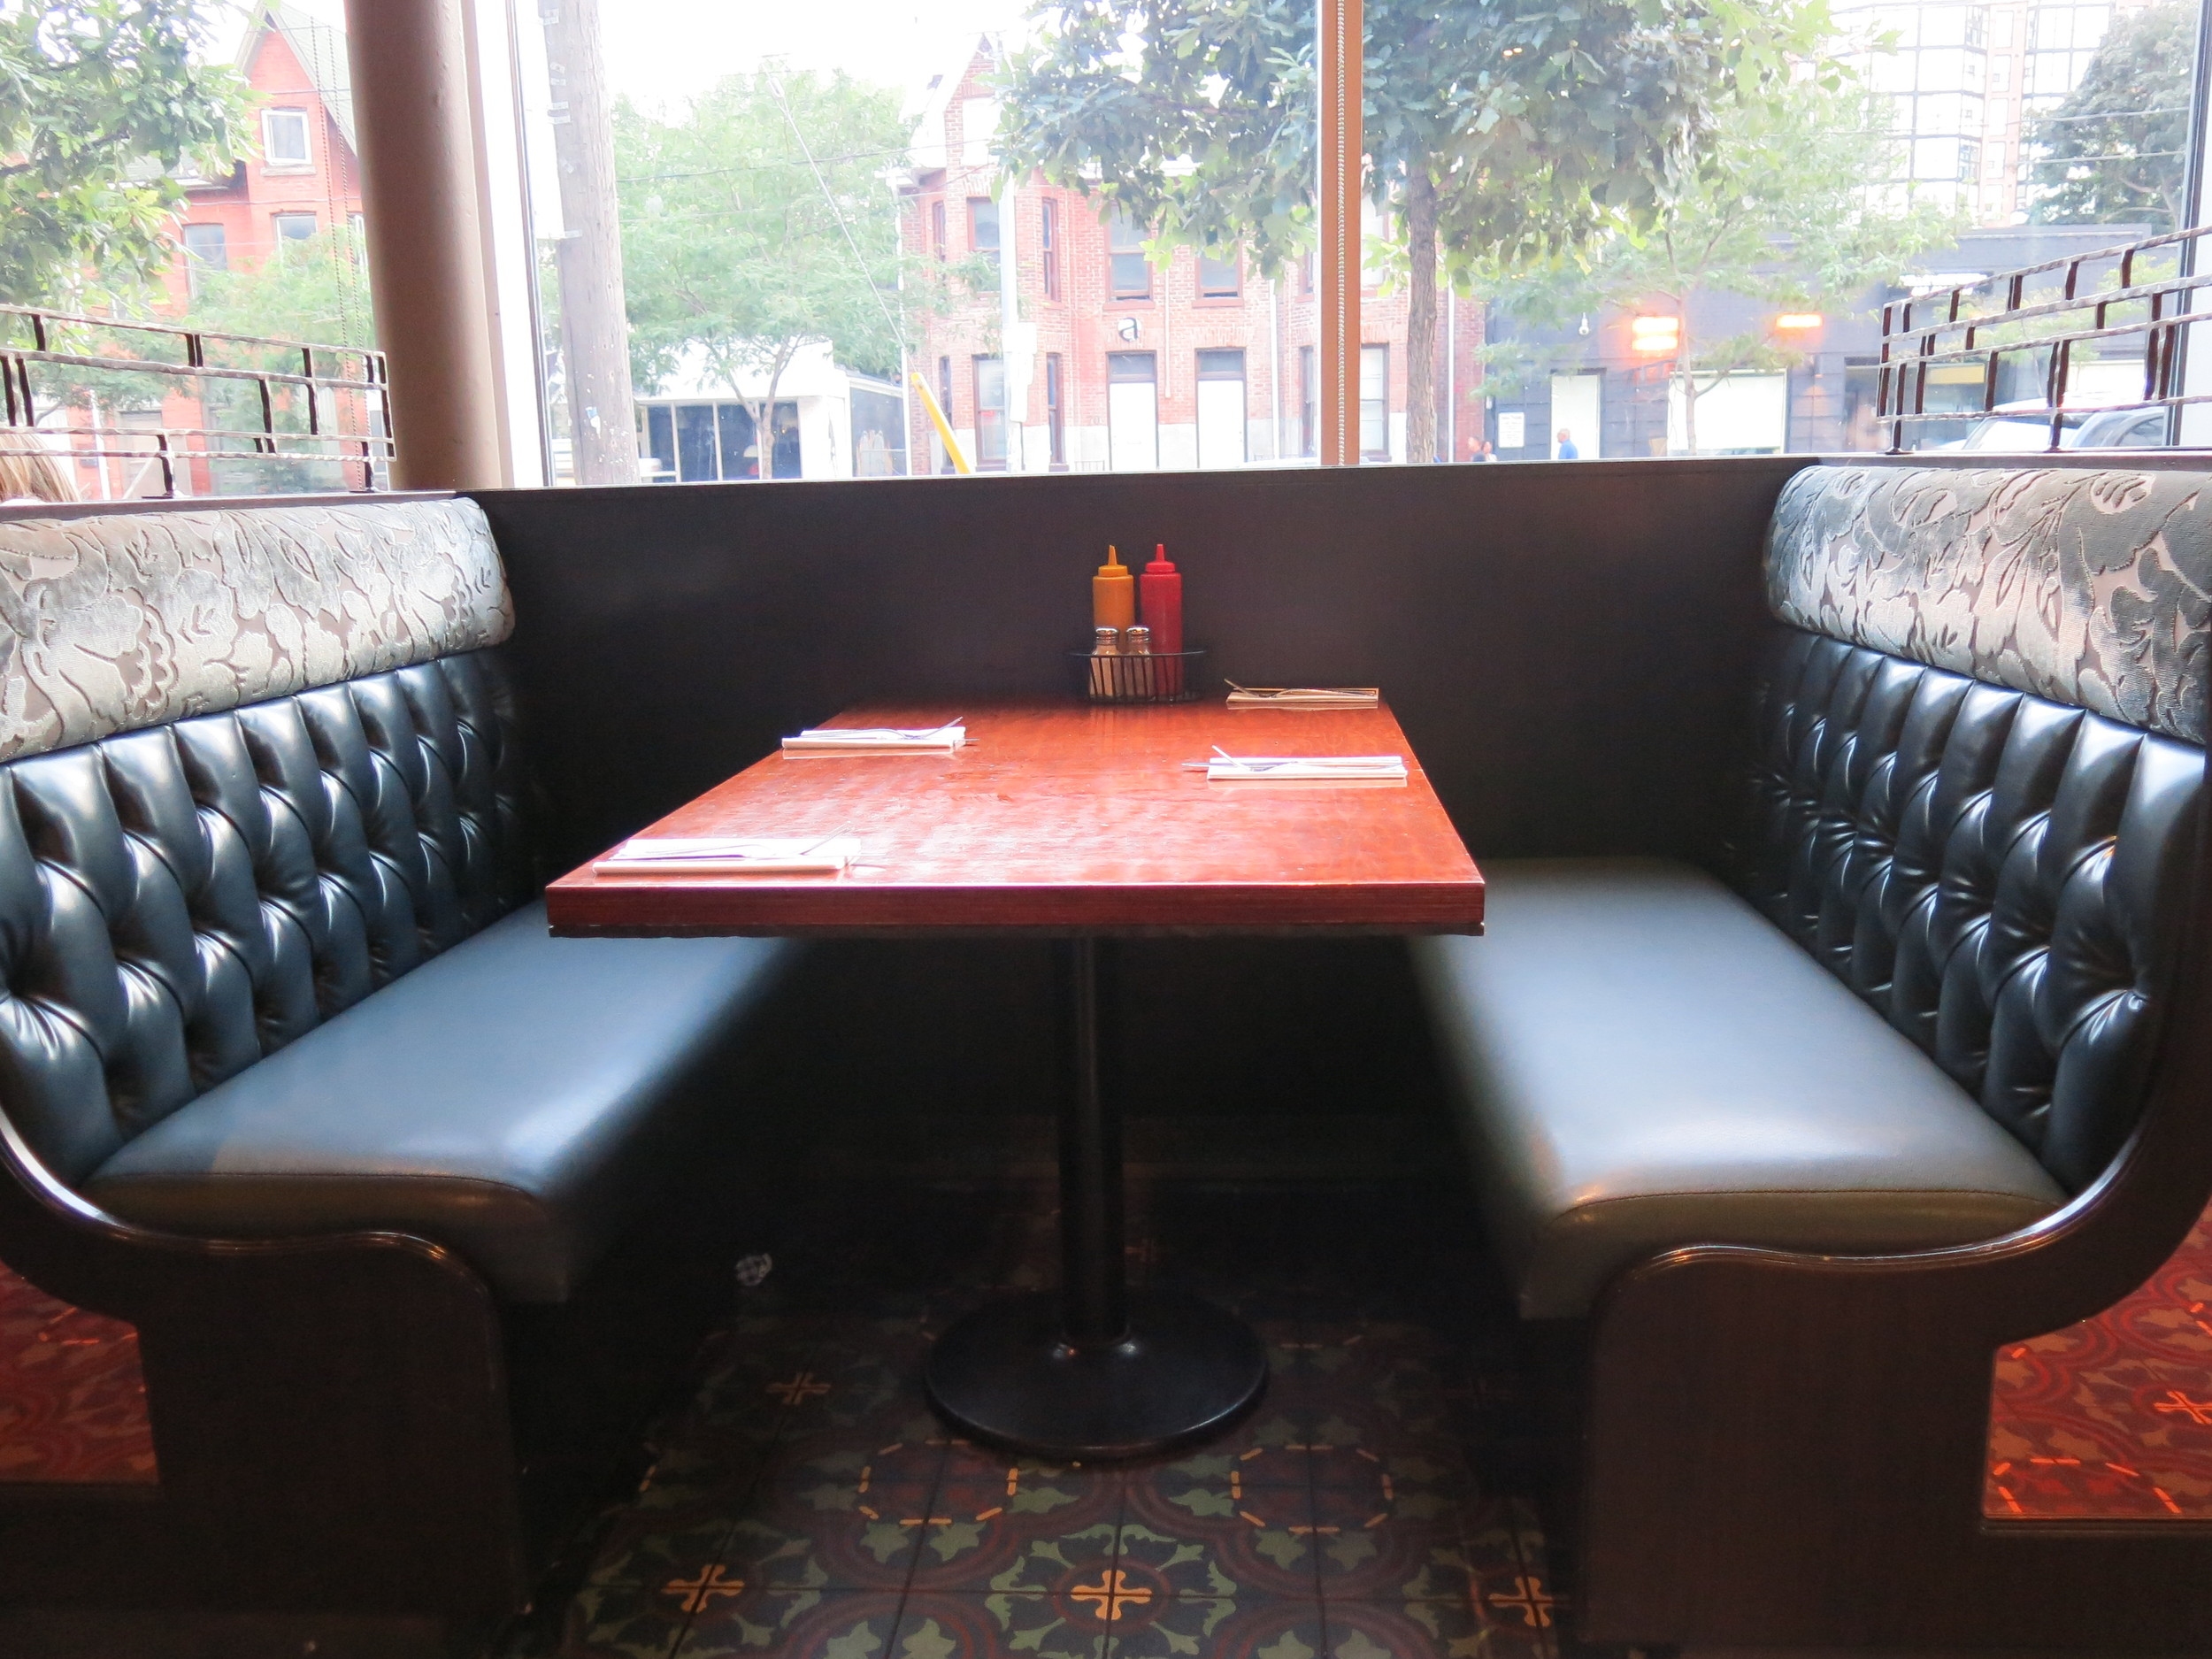 Picture of booth within restaurant.